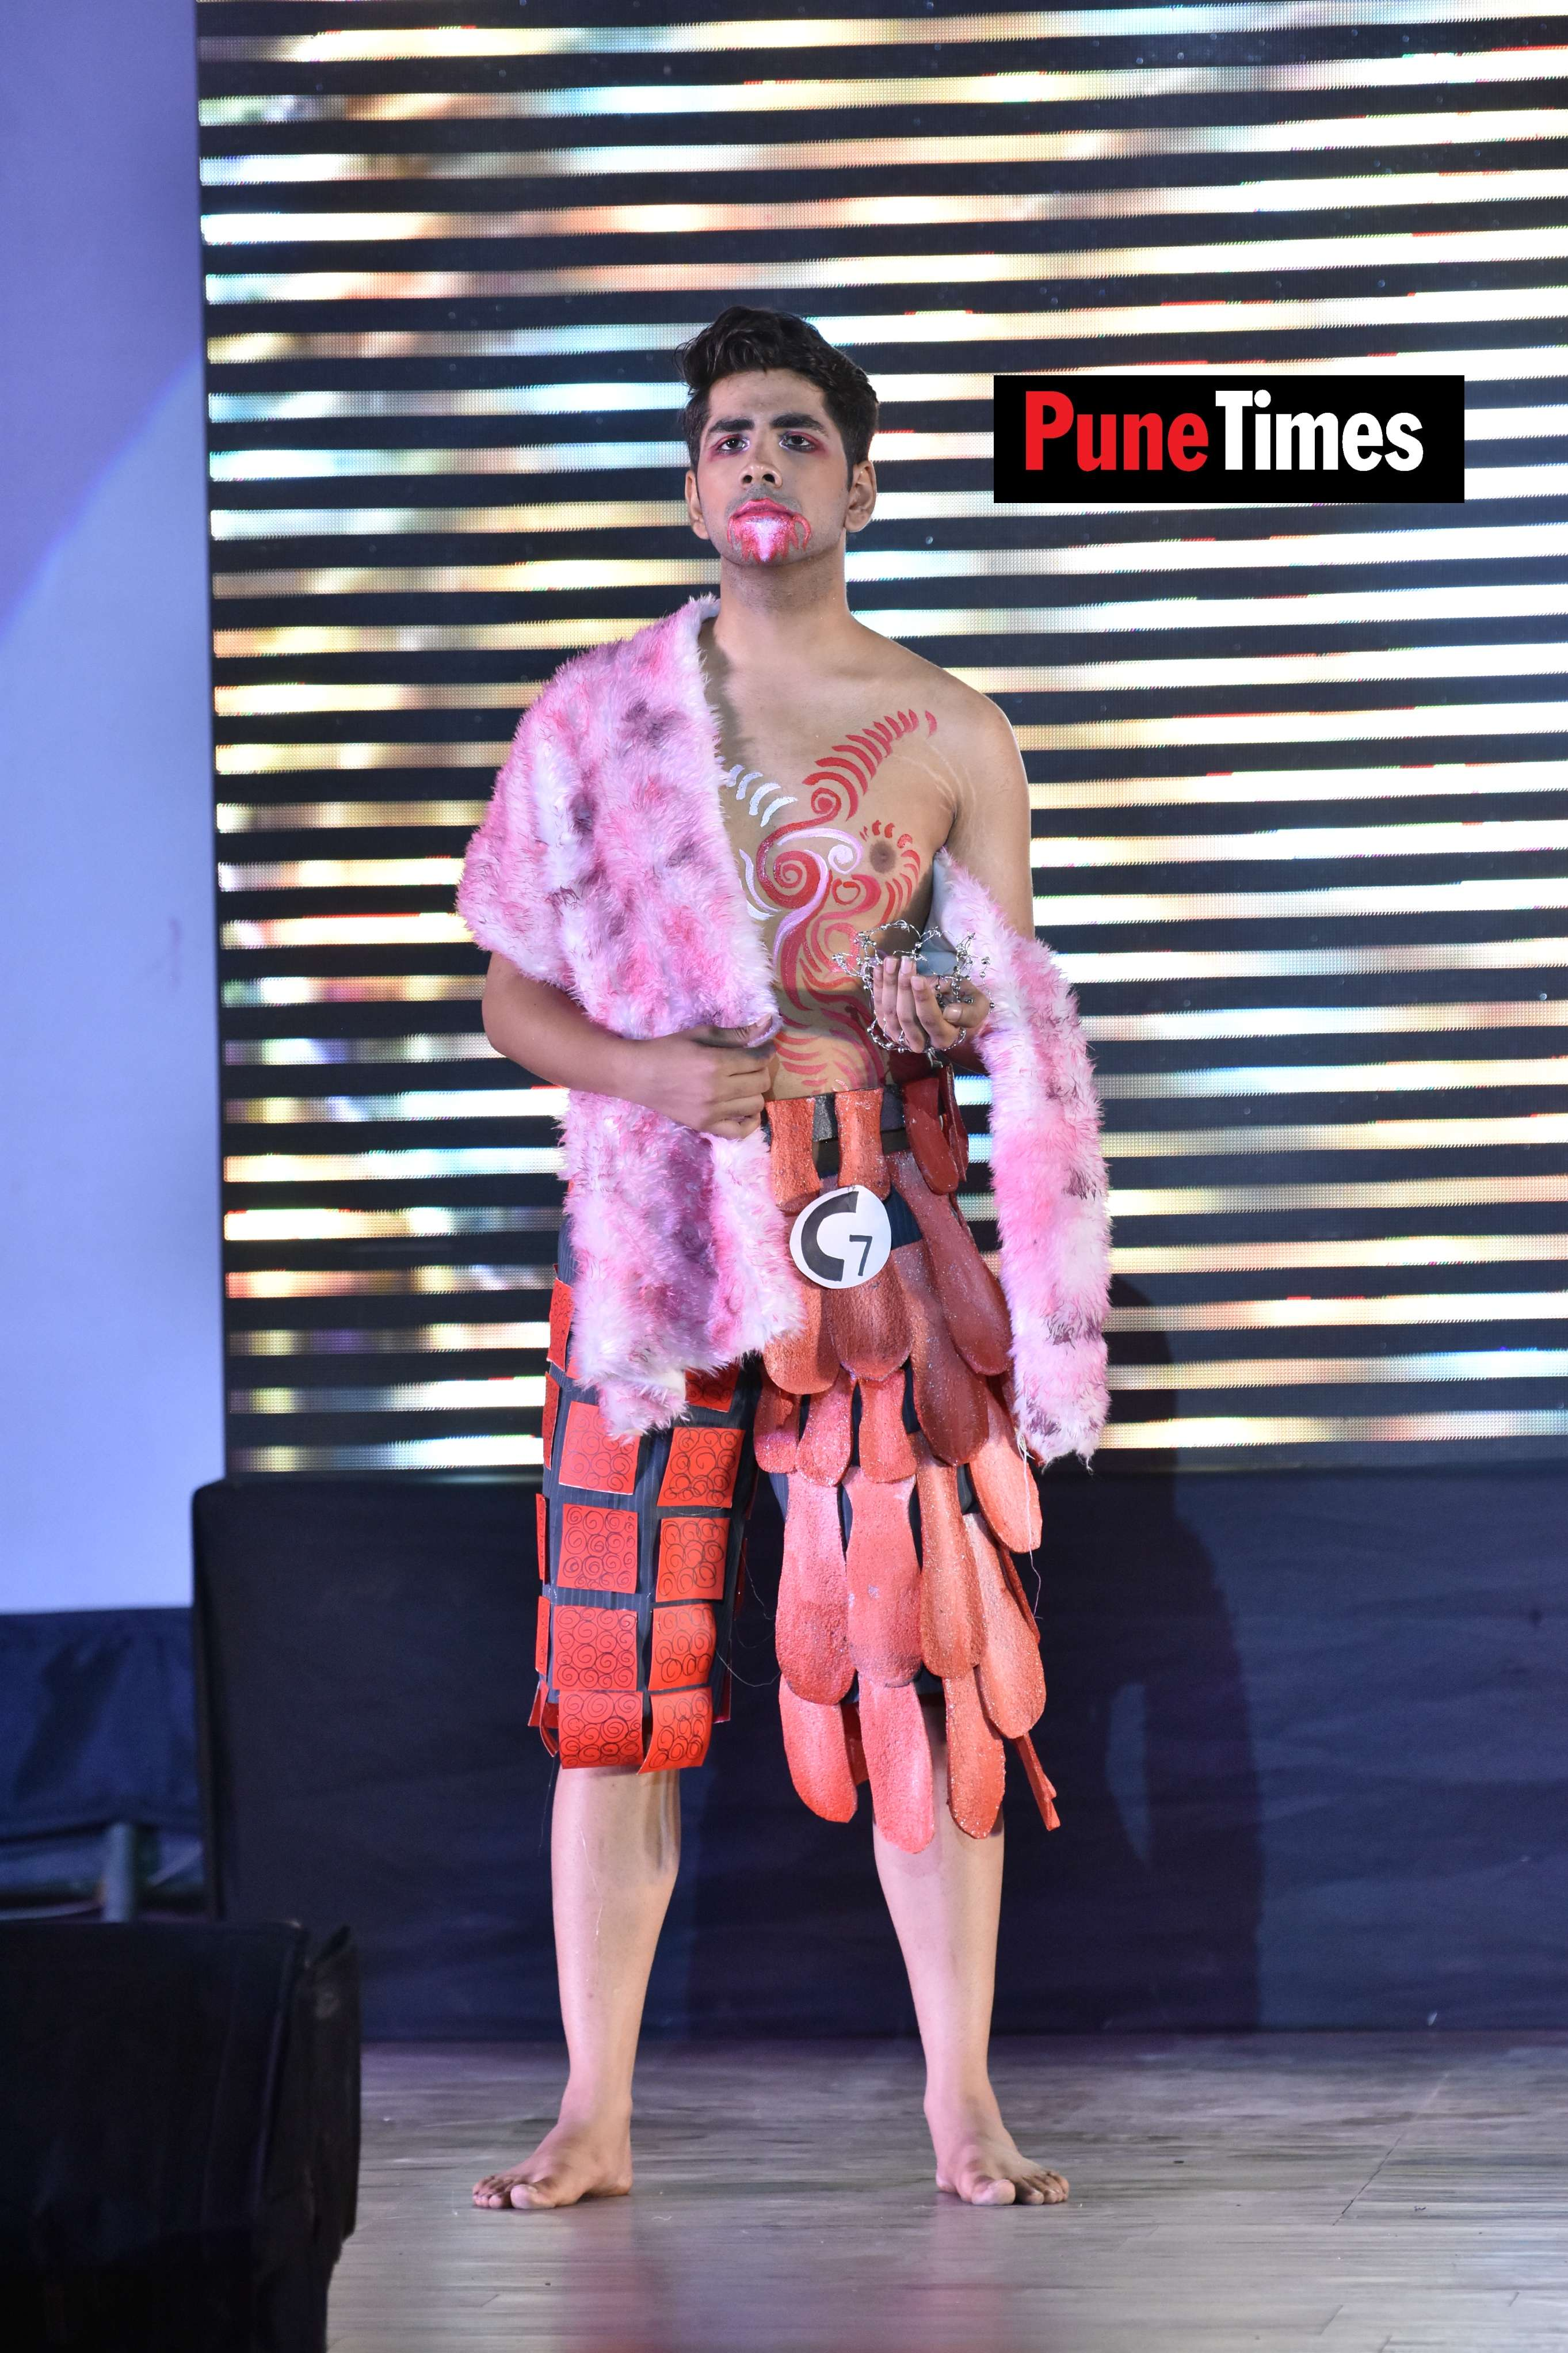 Tilak Afmc Hosts A Sinful Fashion Show Events Movie News Times Of India